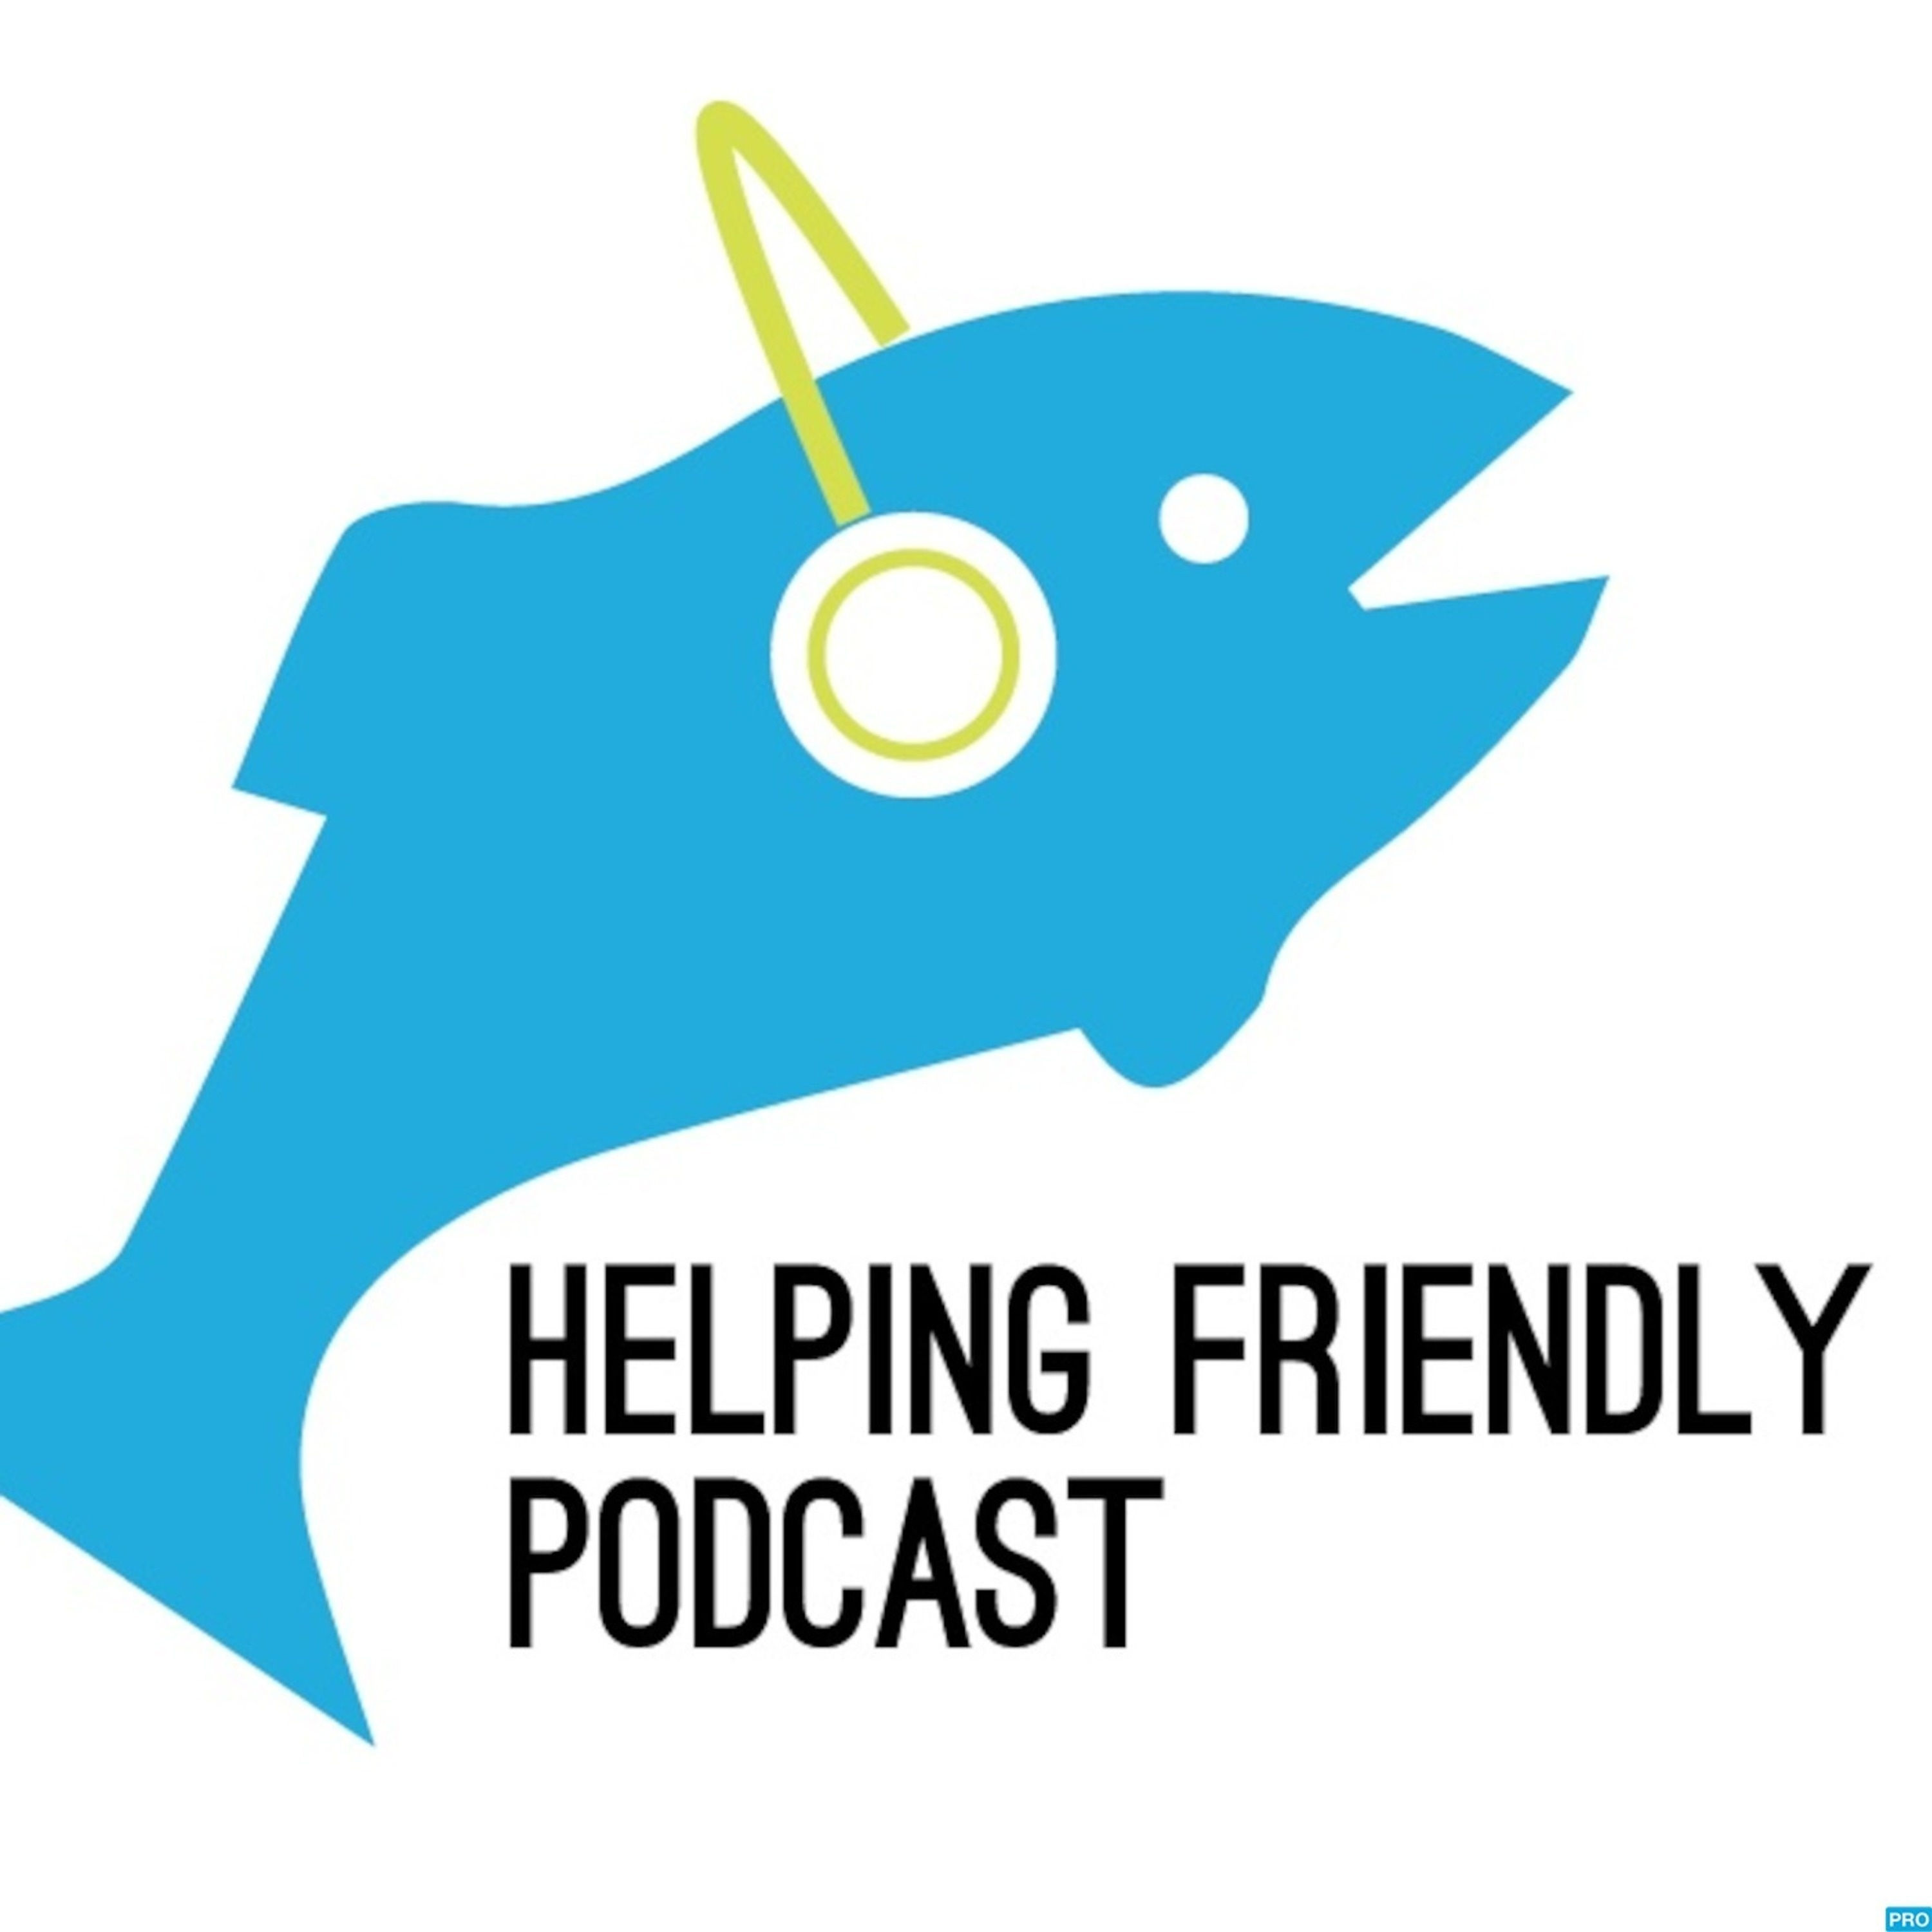 Helping Friendly Podcast